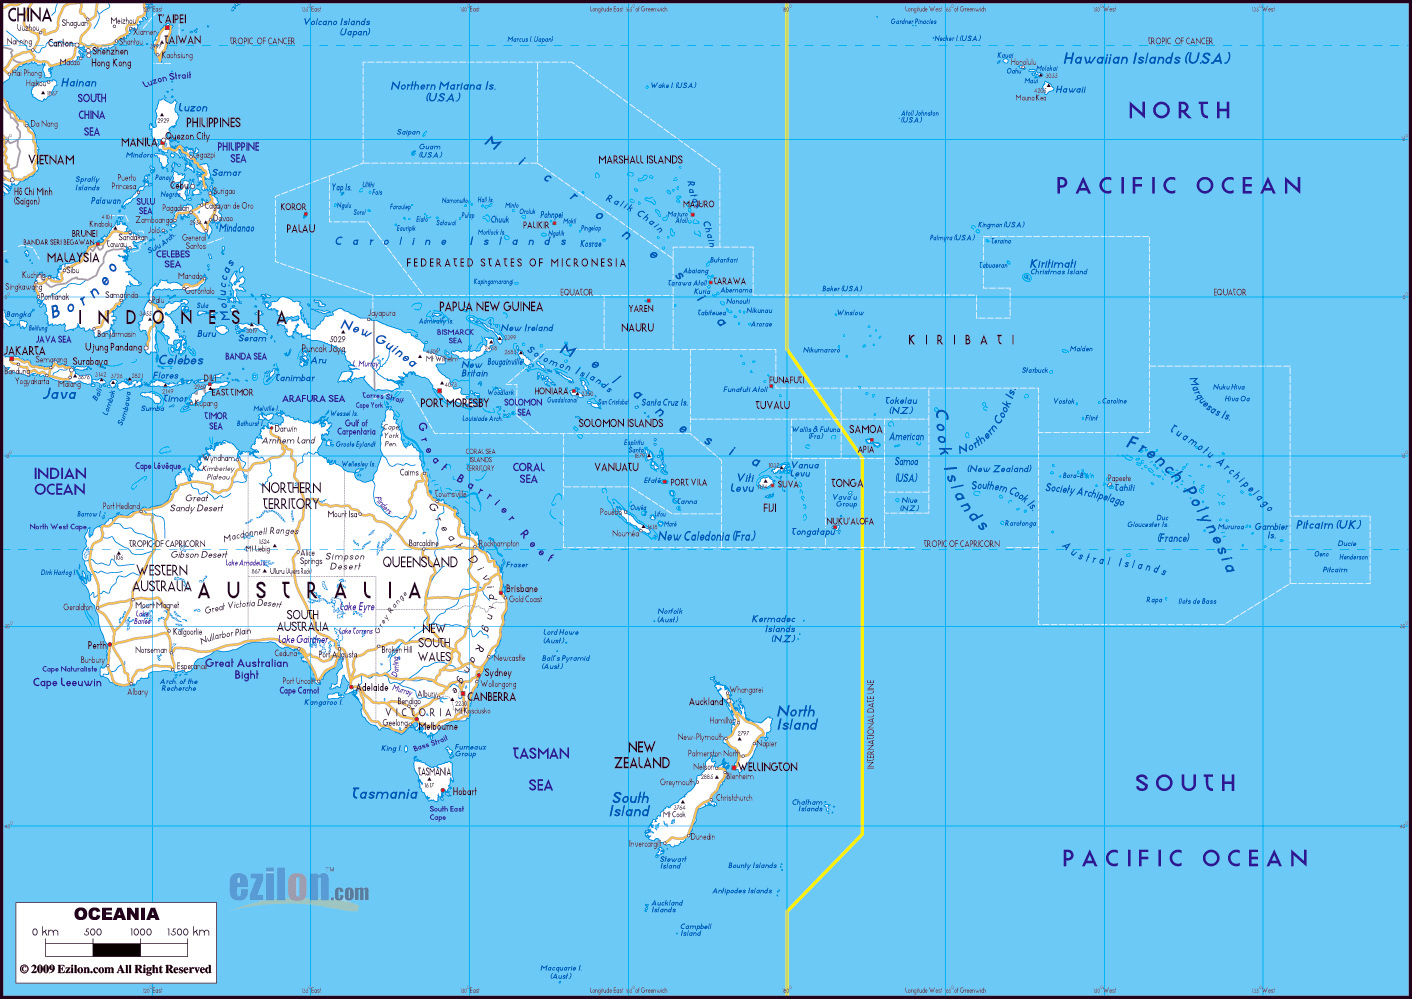 Major Cities In Australia Map.Large Road Map Of Australia And Oceania With Major Cities Oceania